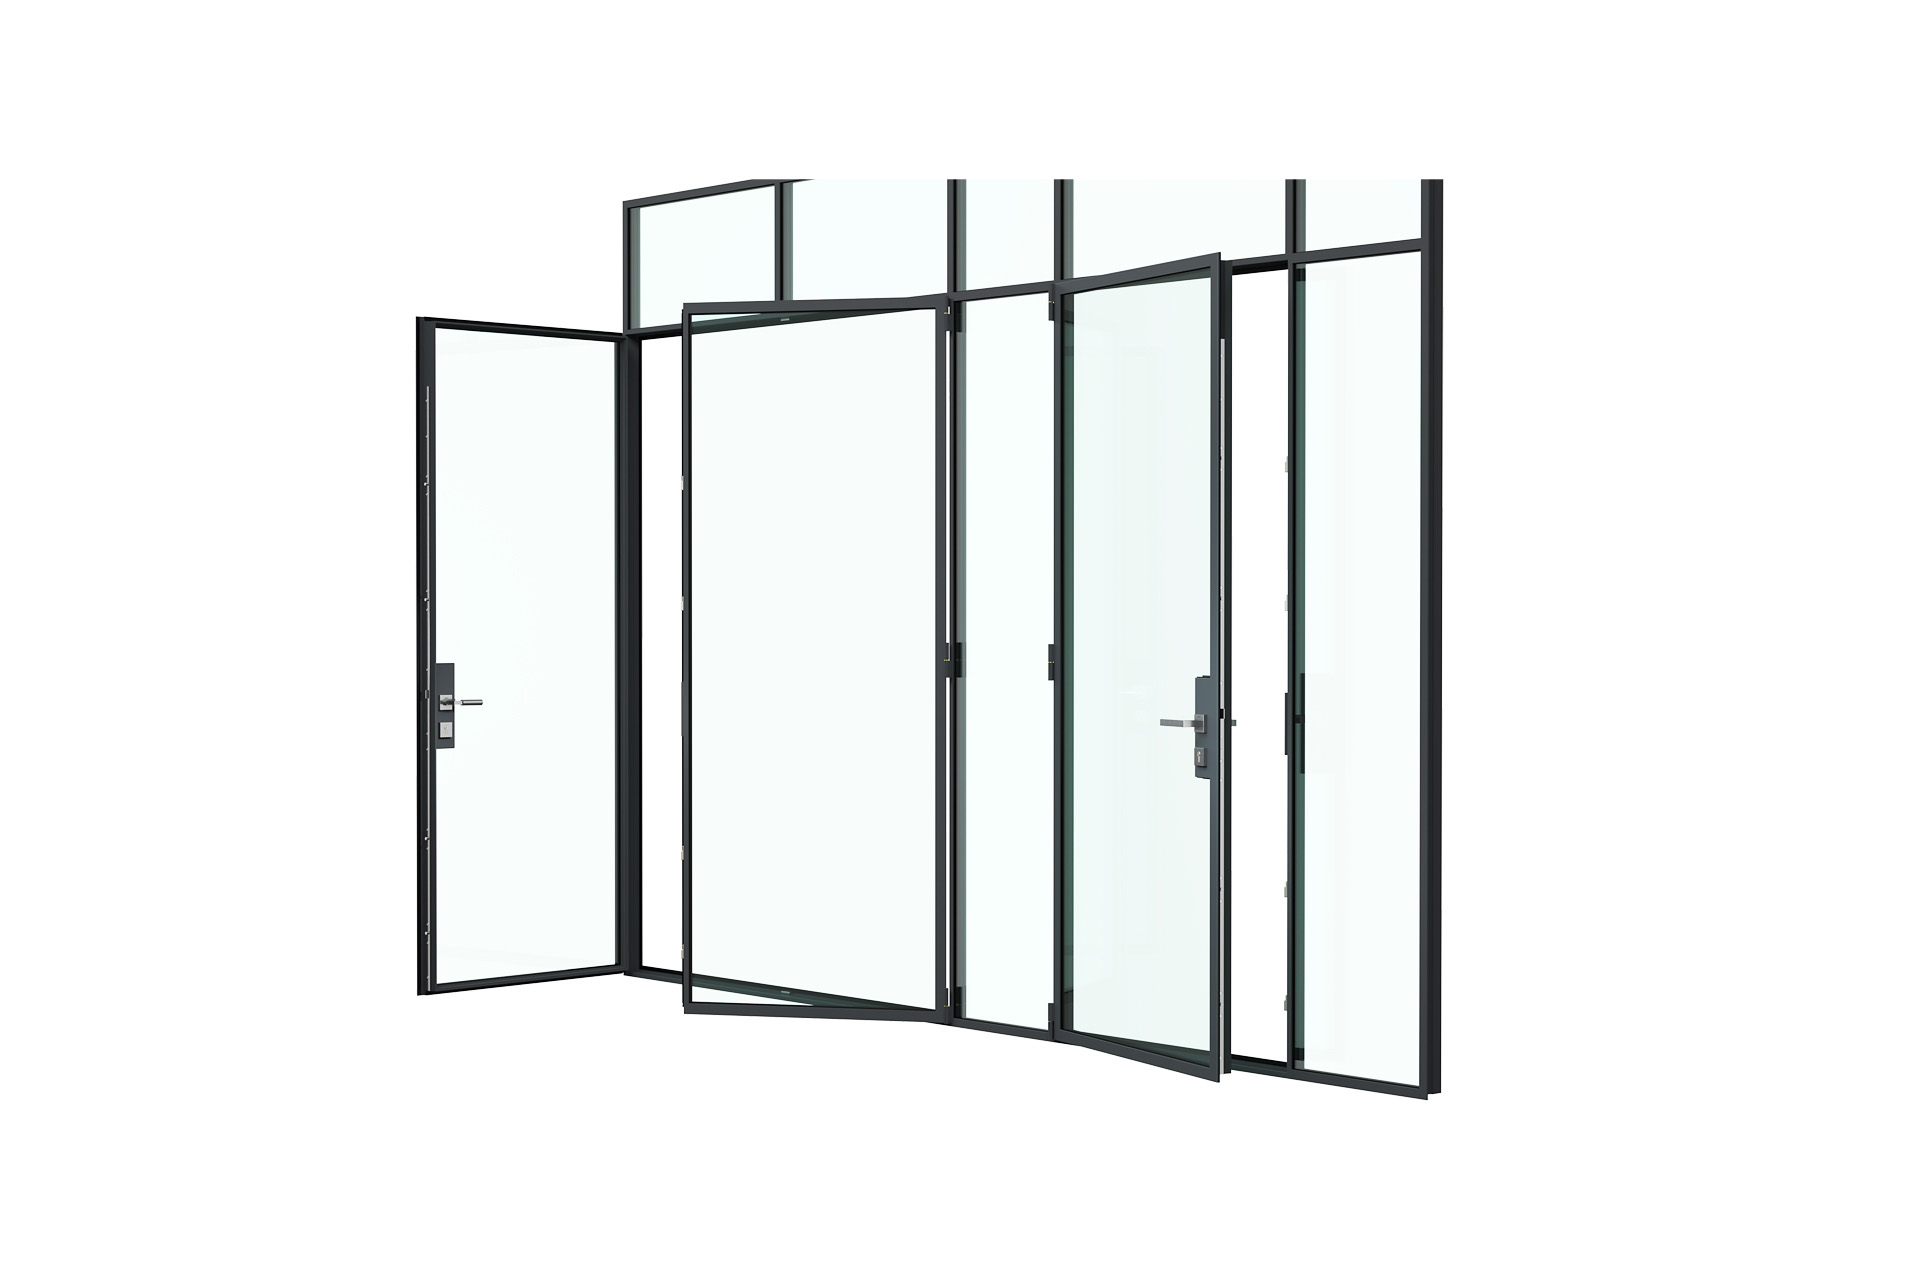 3d rendering side view of MHB steel Floating lock case doors